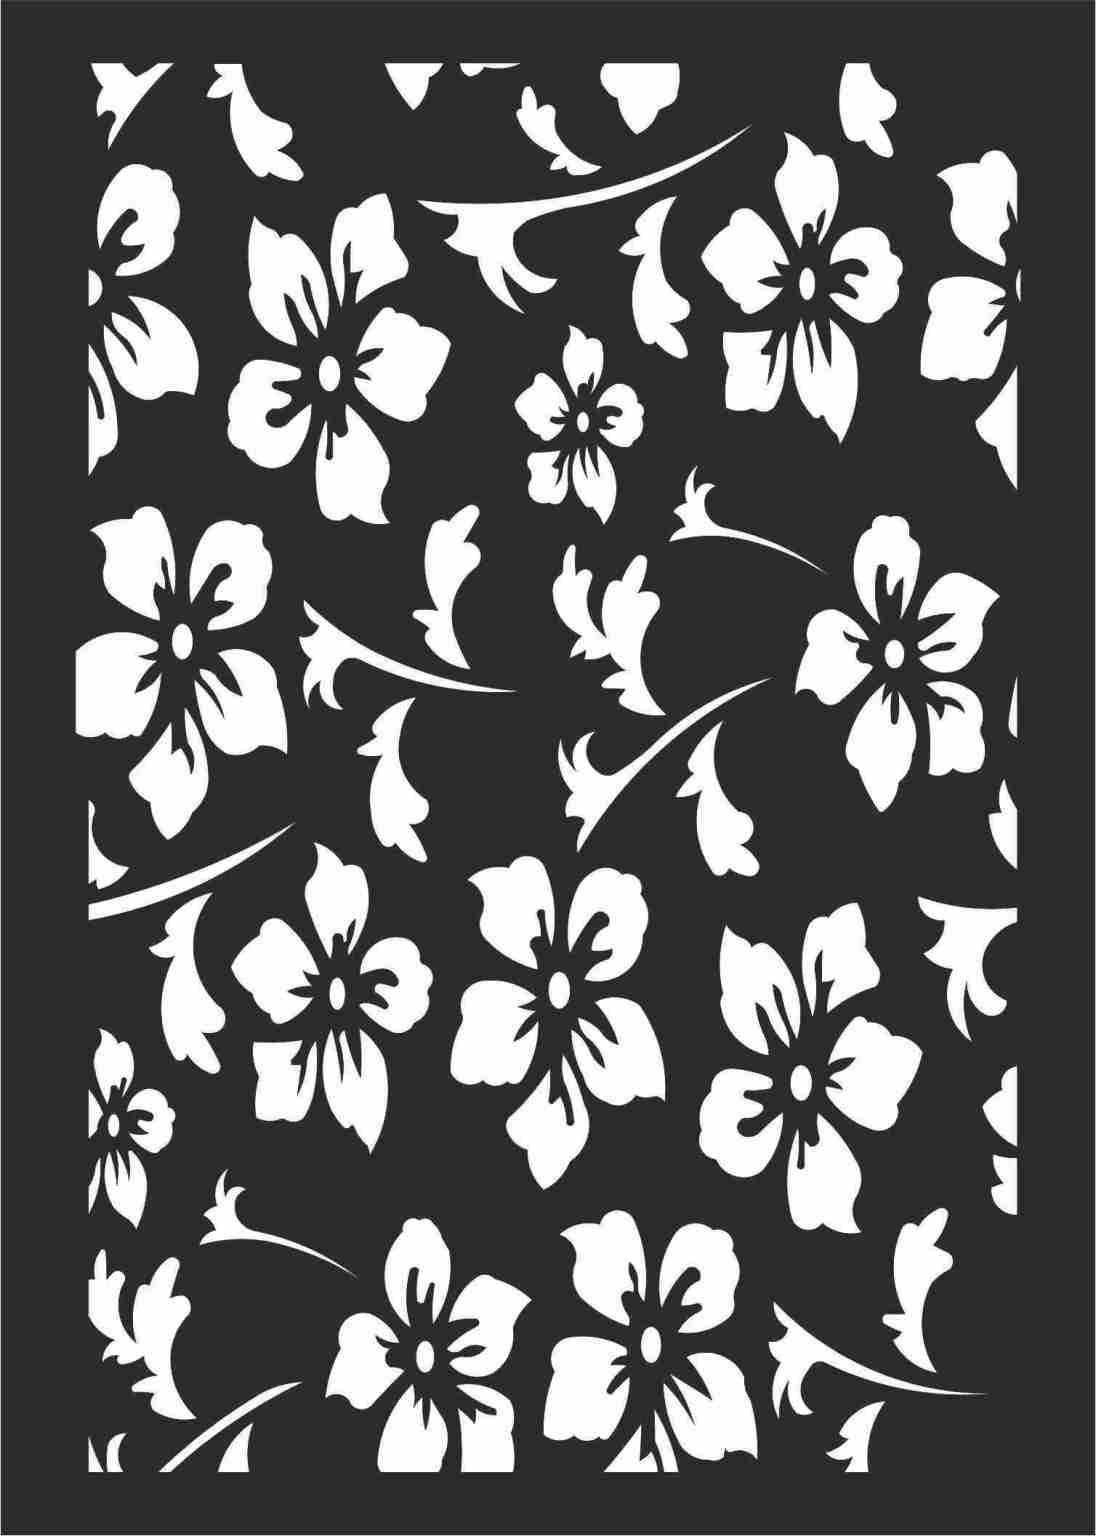 Decorative Screen Patterns For Laser Cutting 109 Free DXF File